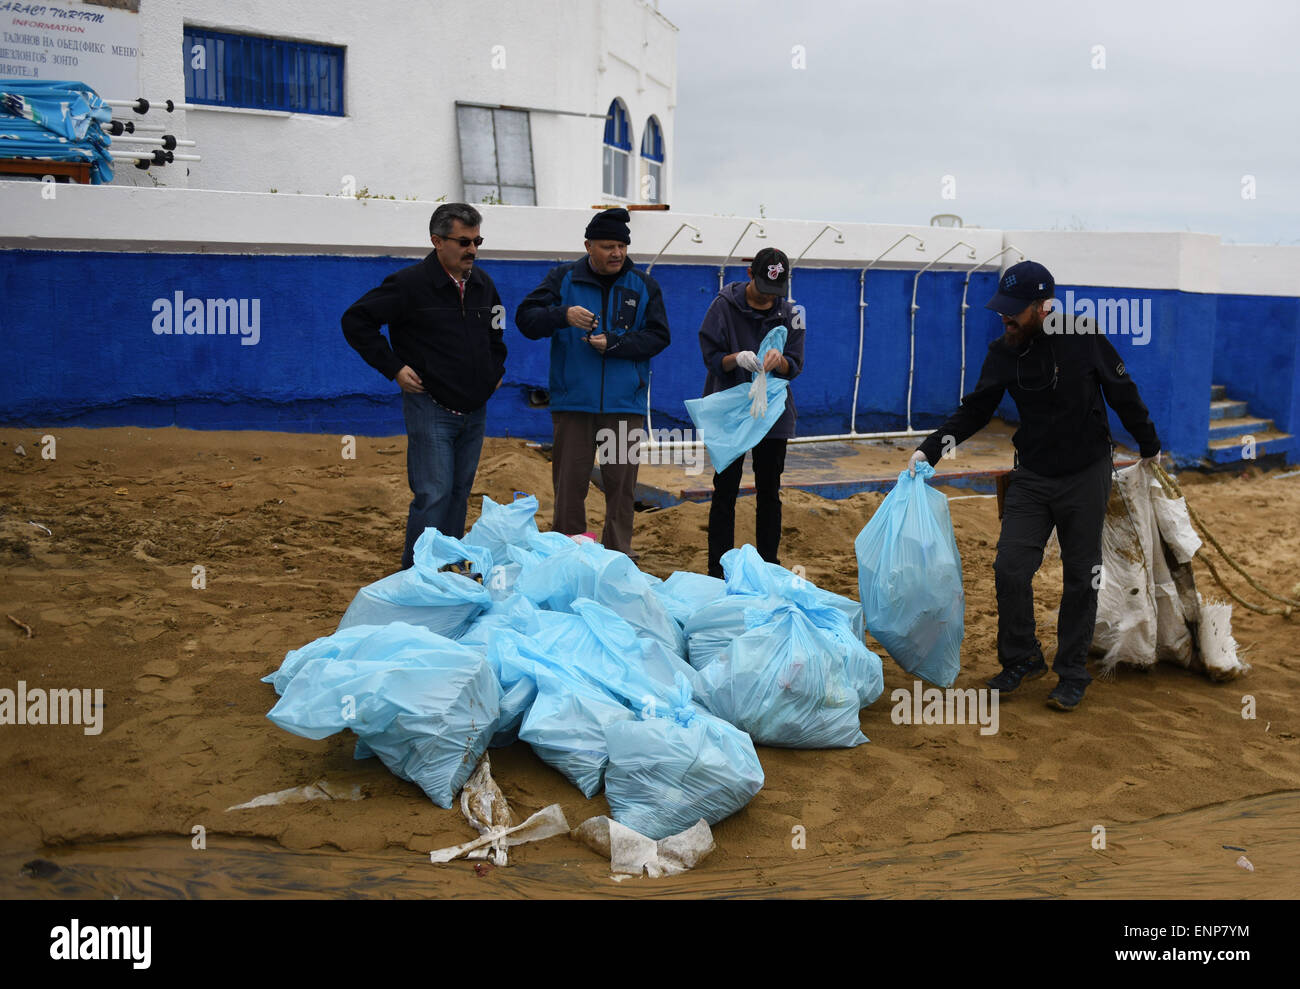 Istanbul, Turkey. 9th May, 2015. Volunteers collect pags of litters together at the seashore of Black Sea in Istanbul, - Stock Image